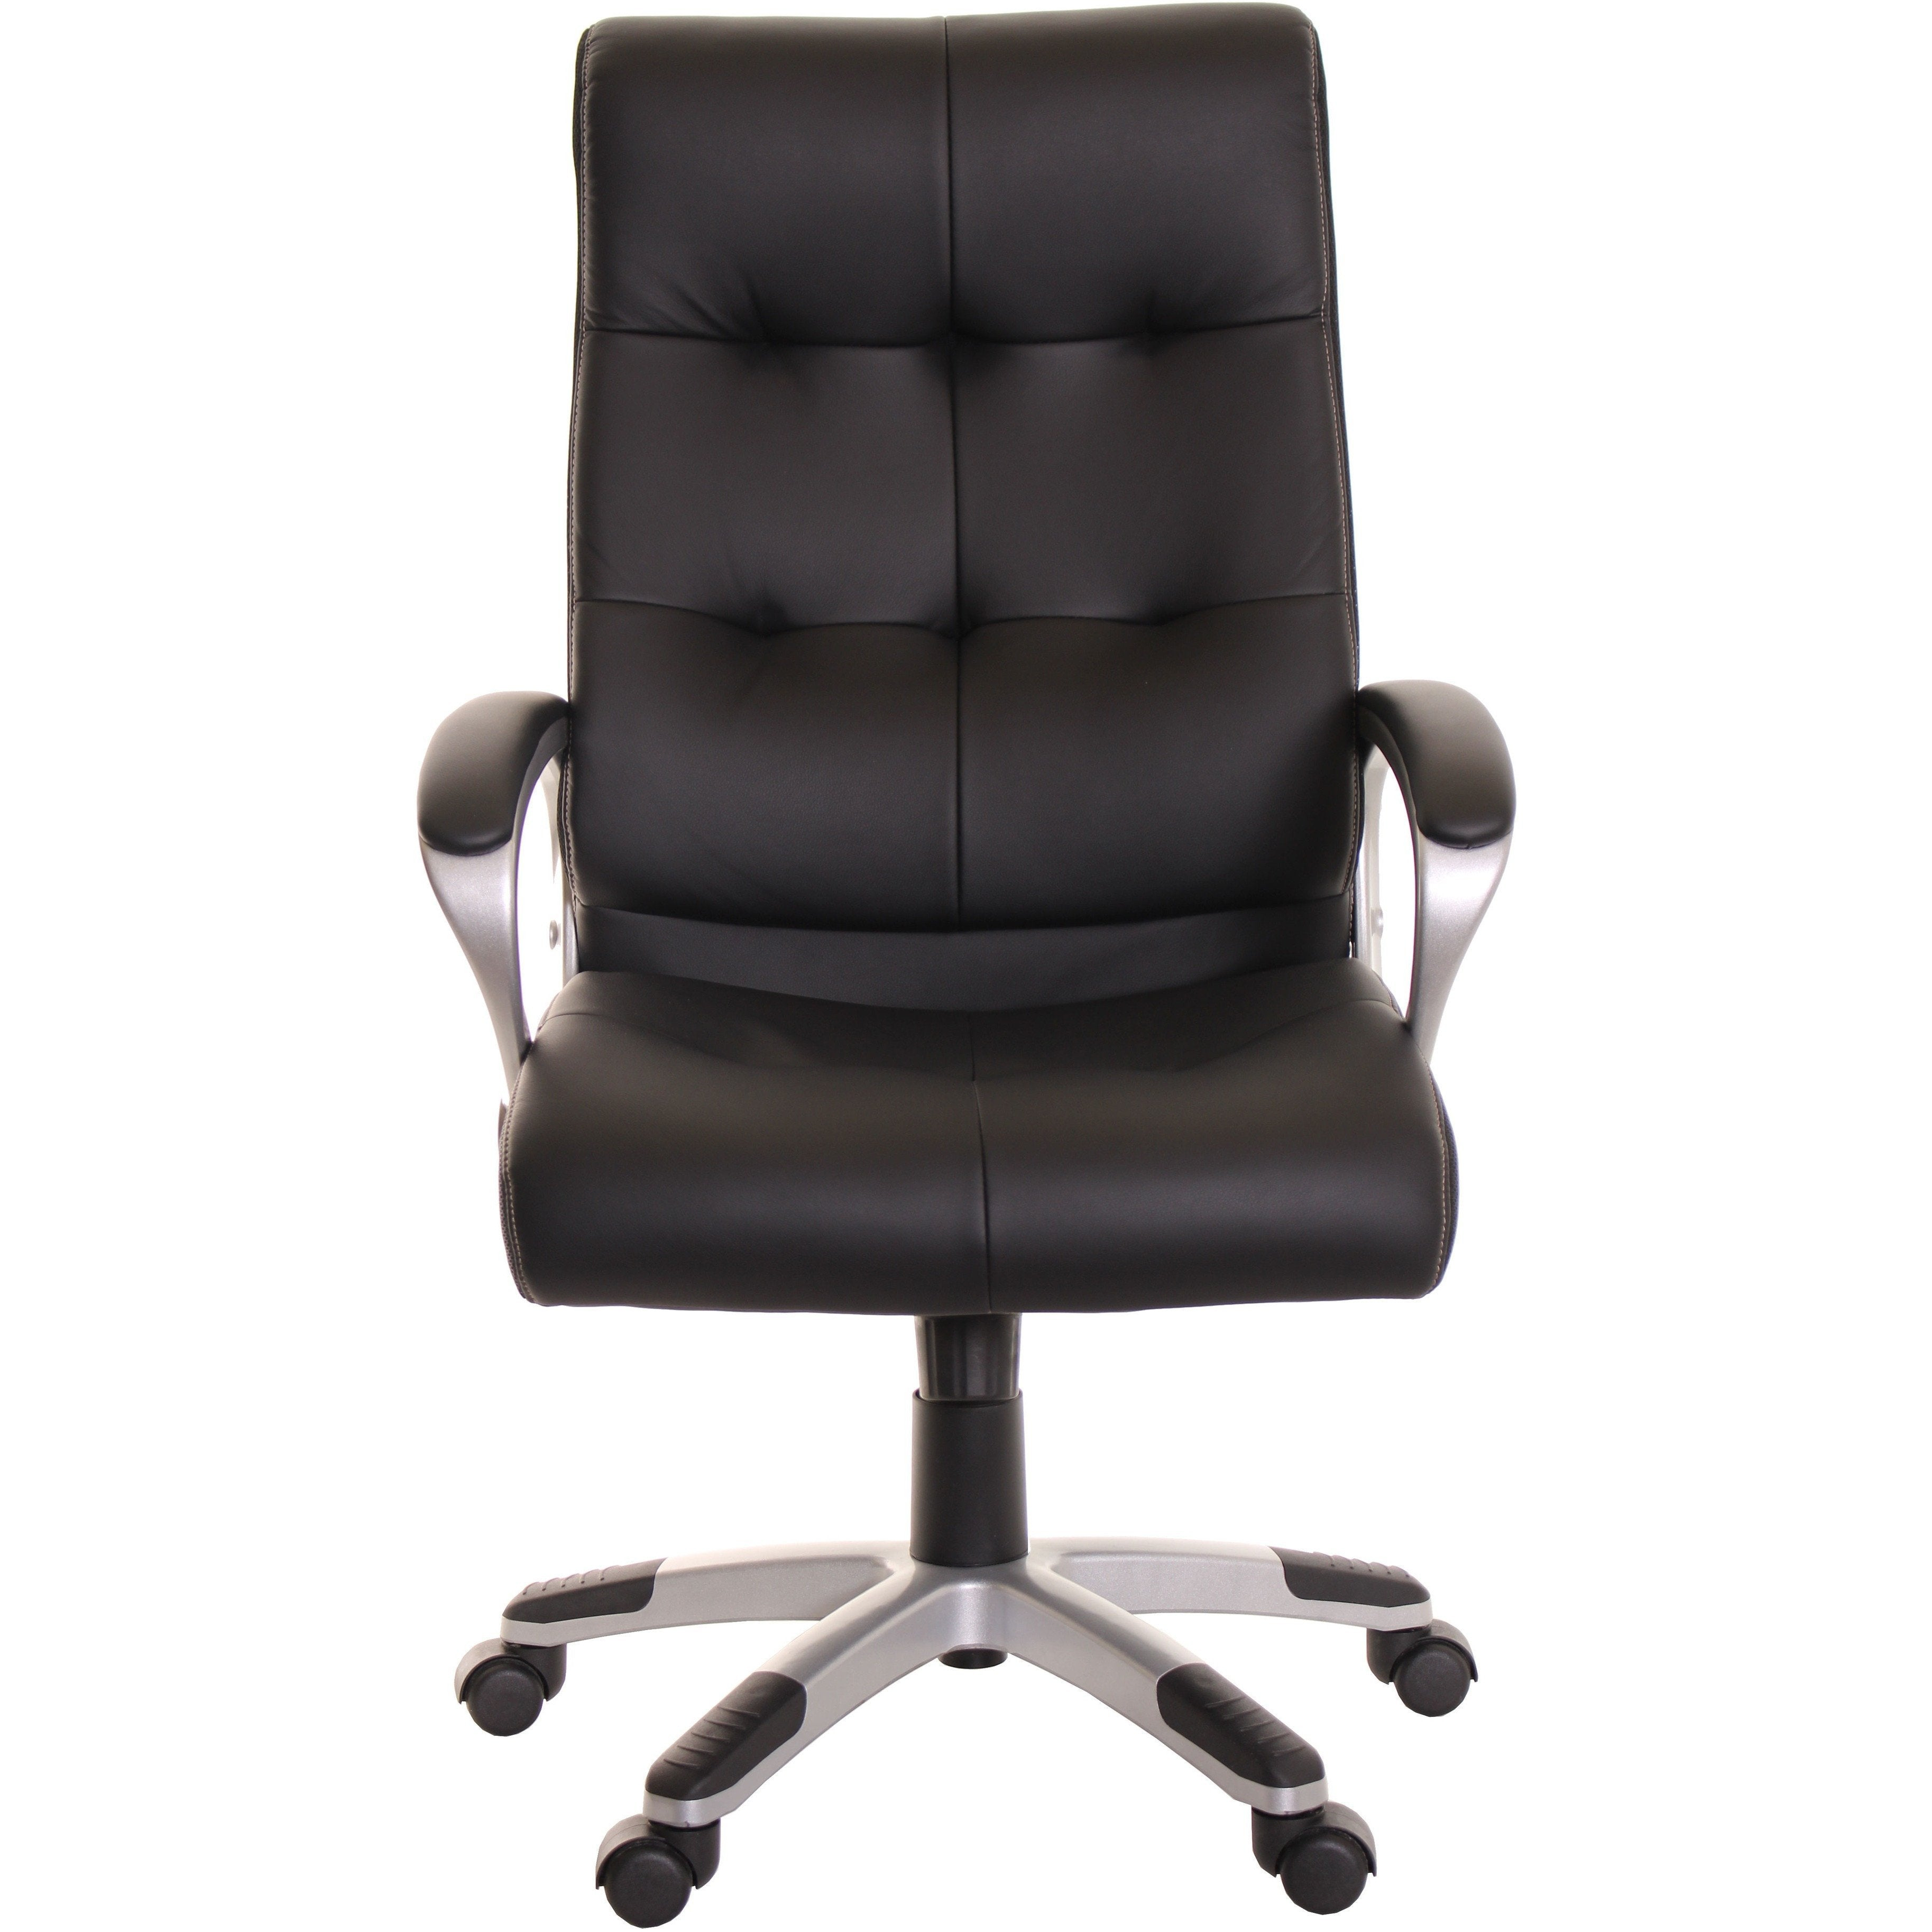 High Back Leather fice Task Chair Black puter Chair by